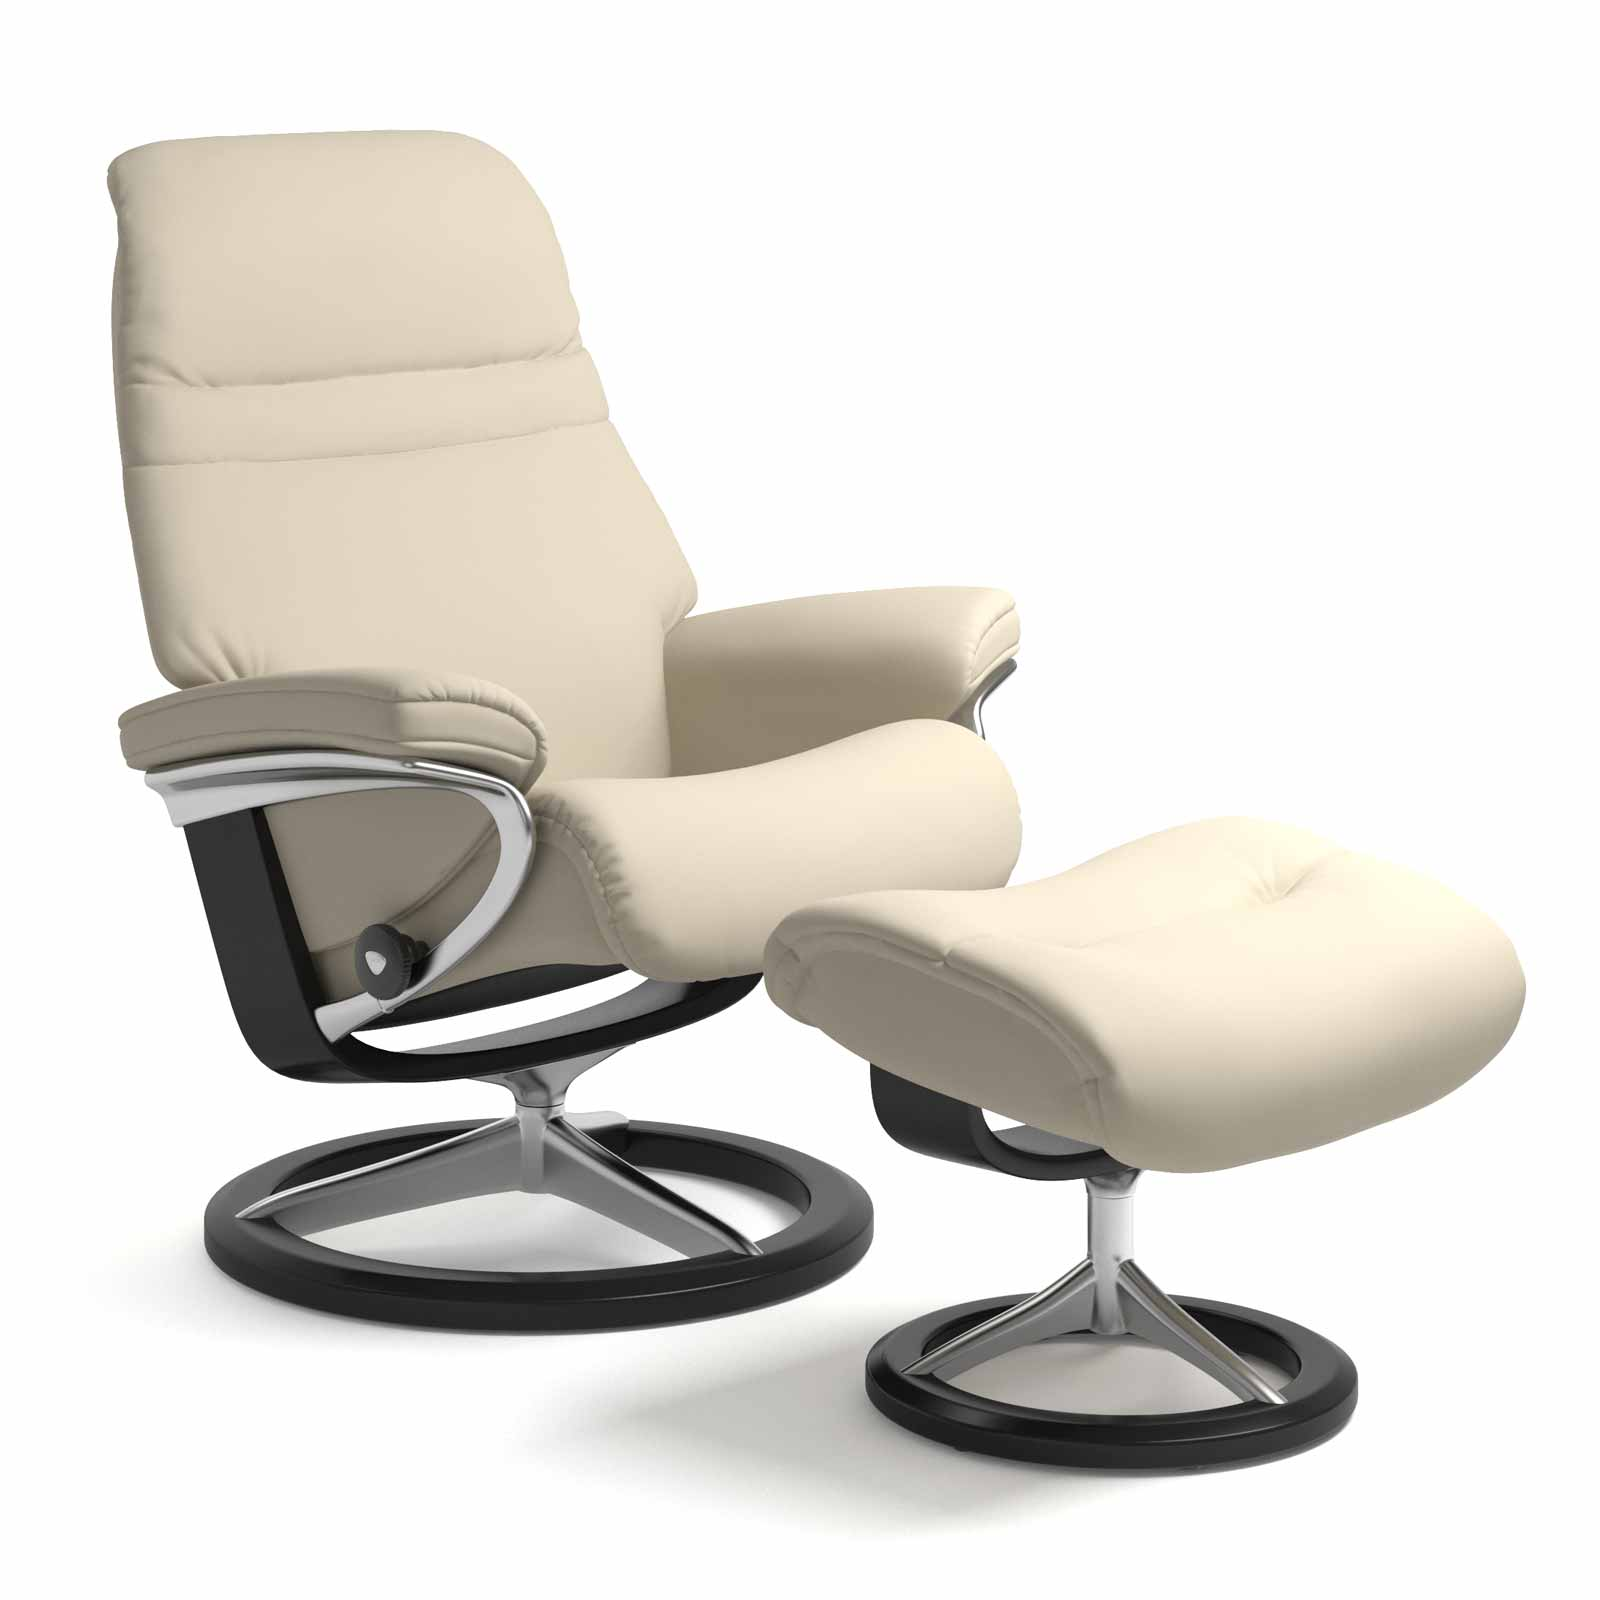 Stressless Magic Signature Sessel Stressless Sessel Sunrise Signature Batick Cream Mit Hocker